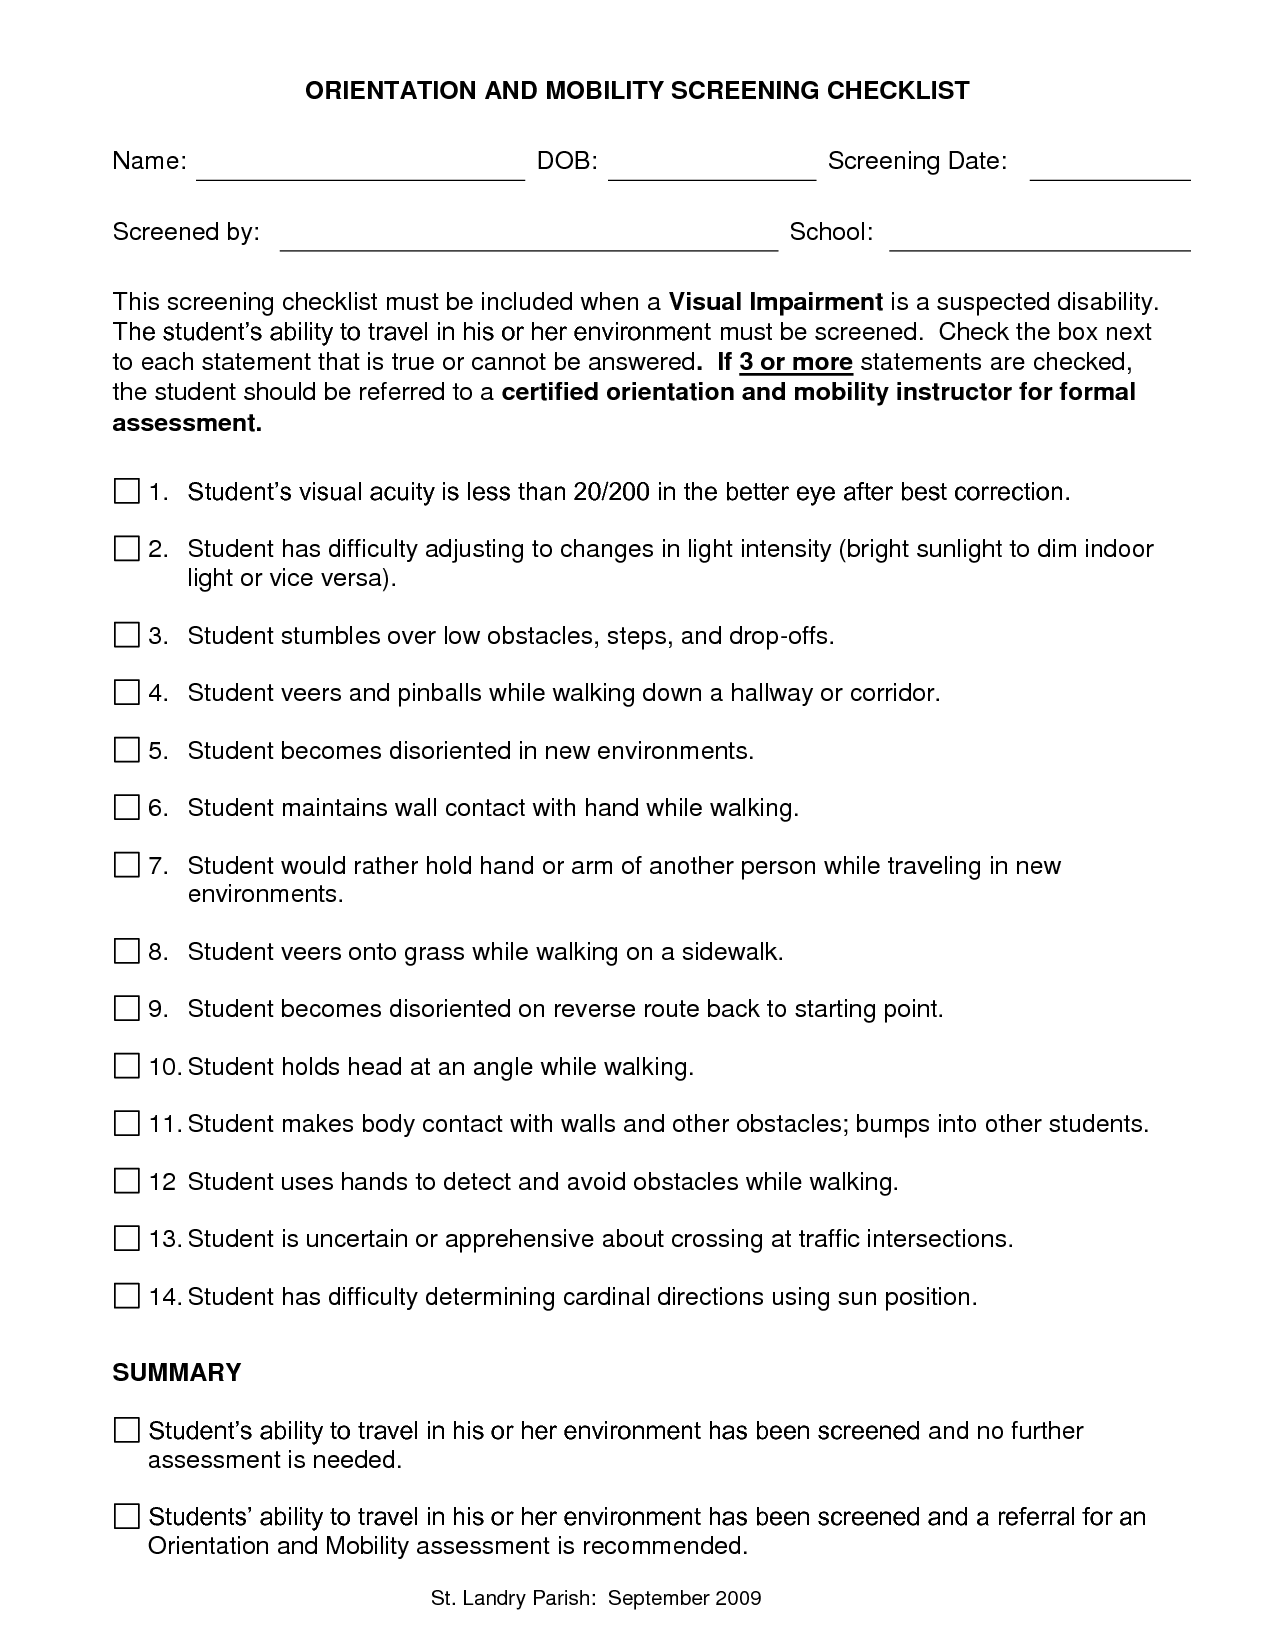 Orientation And Mobility Assessment Checklist